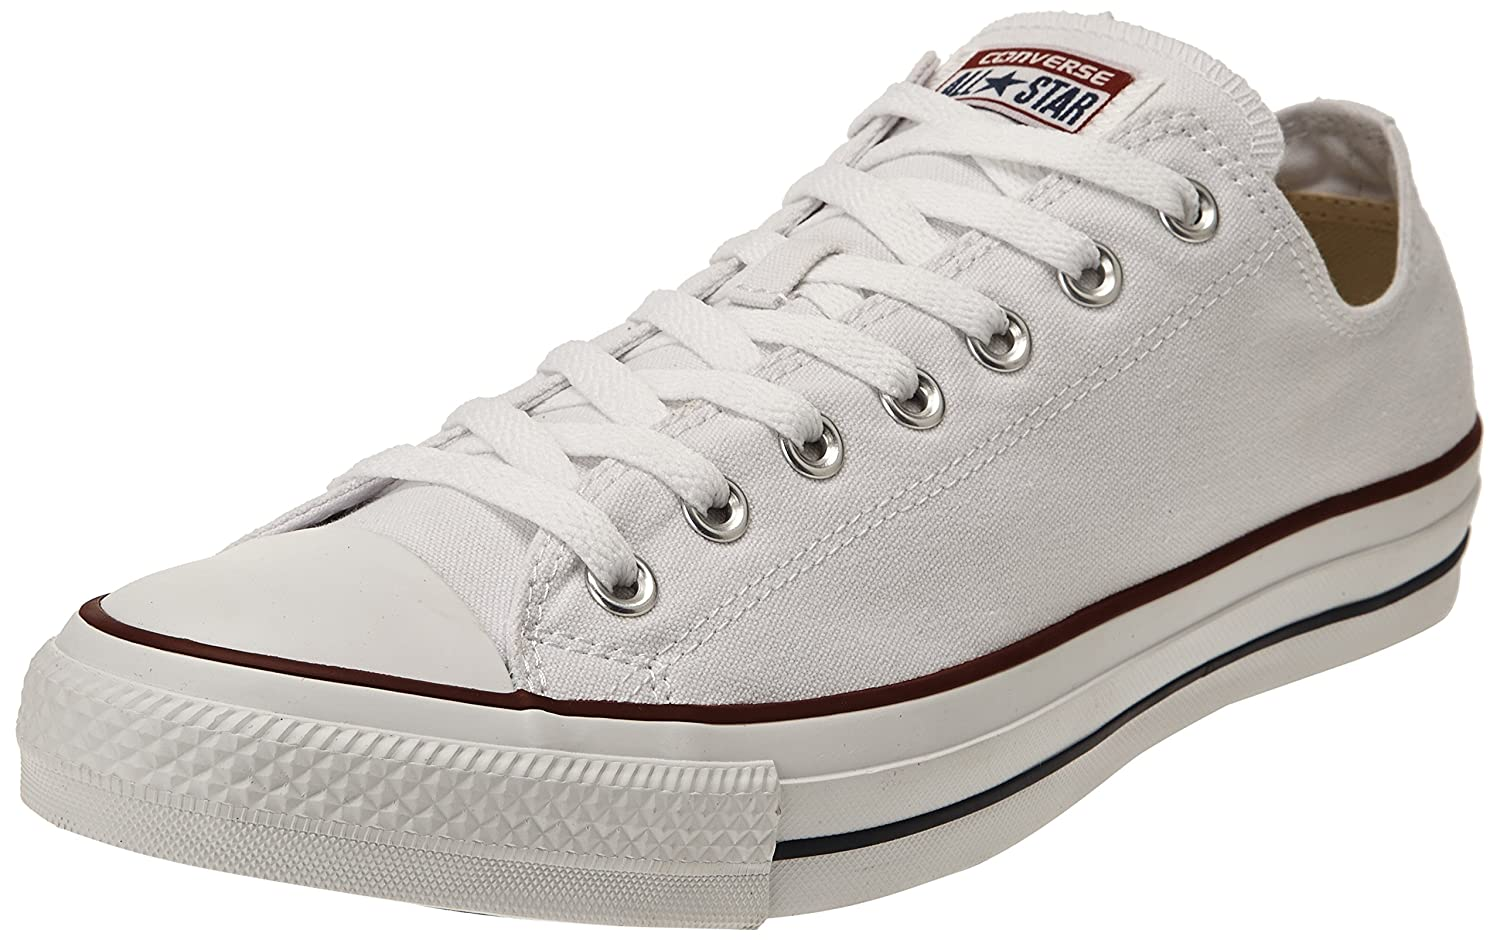 Converse Chuck Star Taylor All All Star Core, Baskets Mixte Adulte 19997 Blanc 90a5503 - piero.space